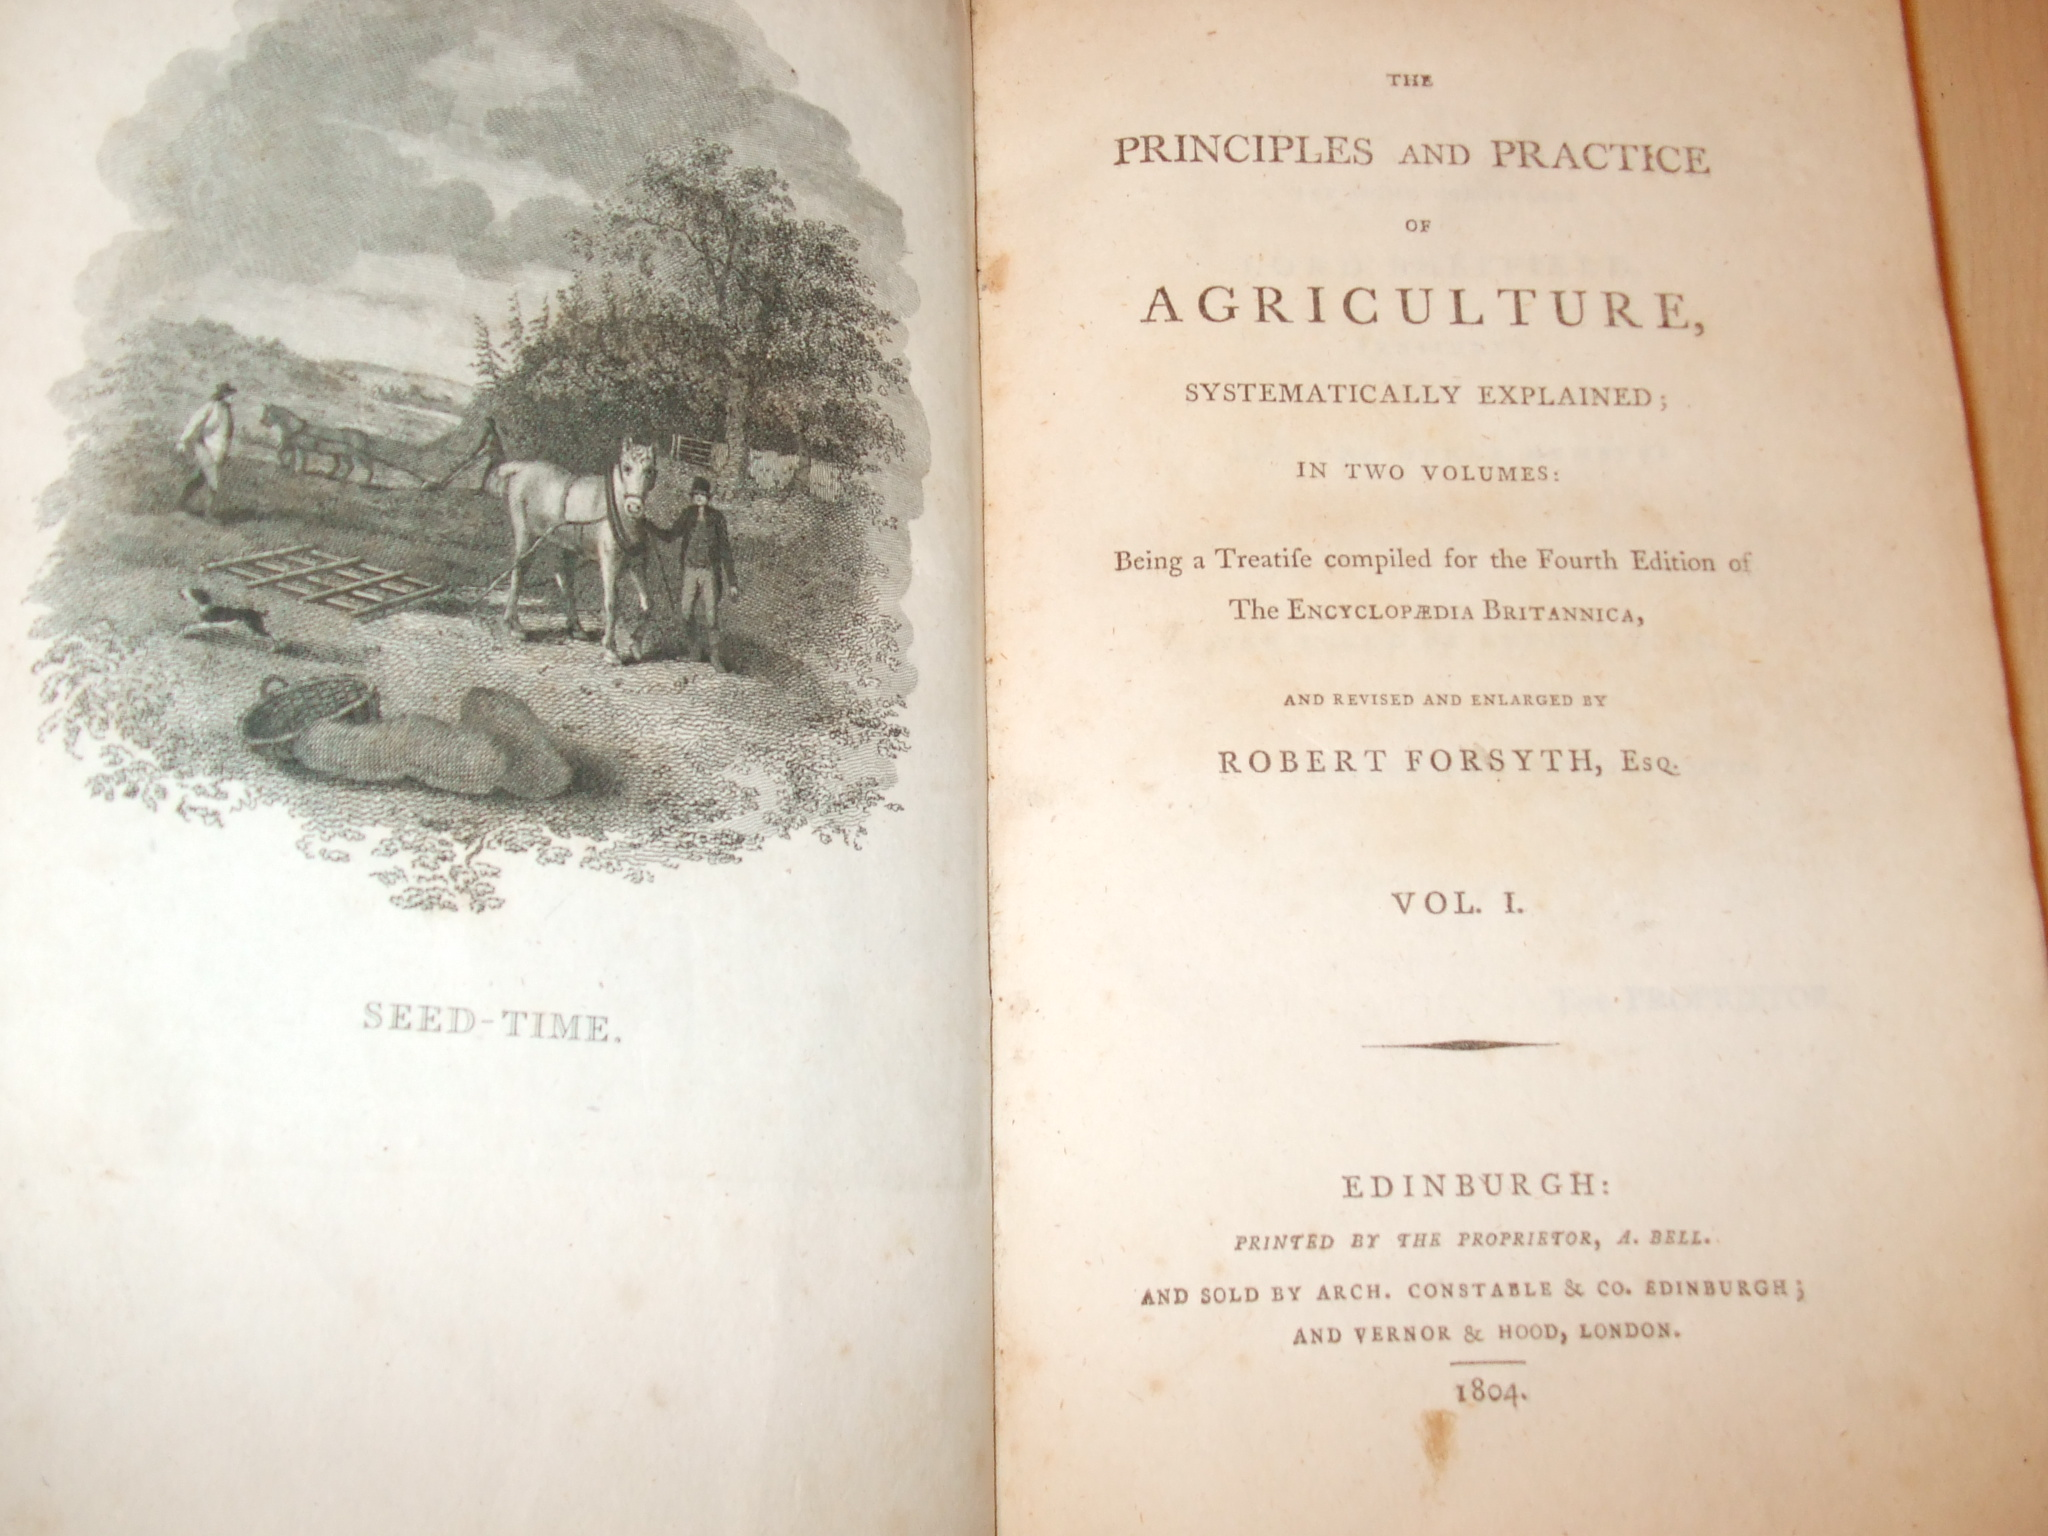 Image for The Principles and Practice of Agriculture, Systematically Explained in Two Volumes: Being a Treatise Compiled for the Fourth Edition of the Encyclopaedia Britannica, and Revised and Enlarged